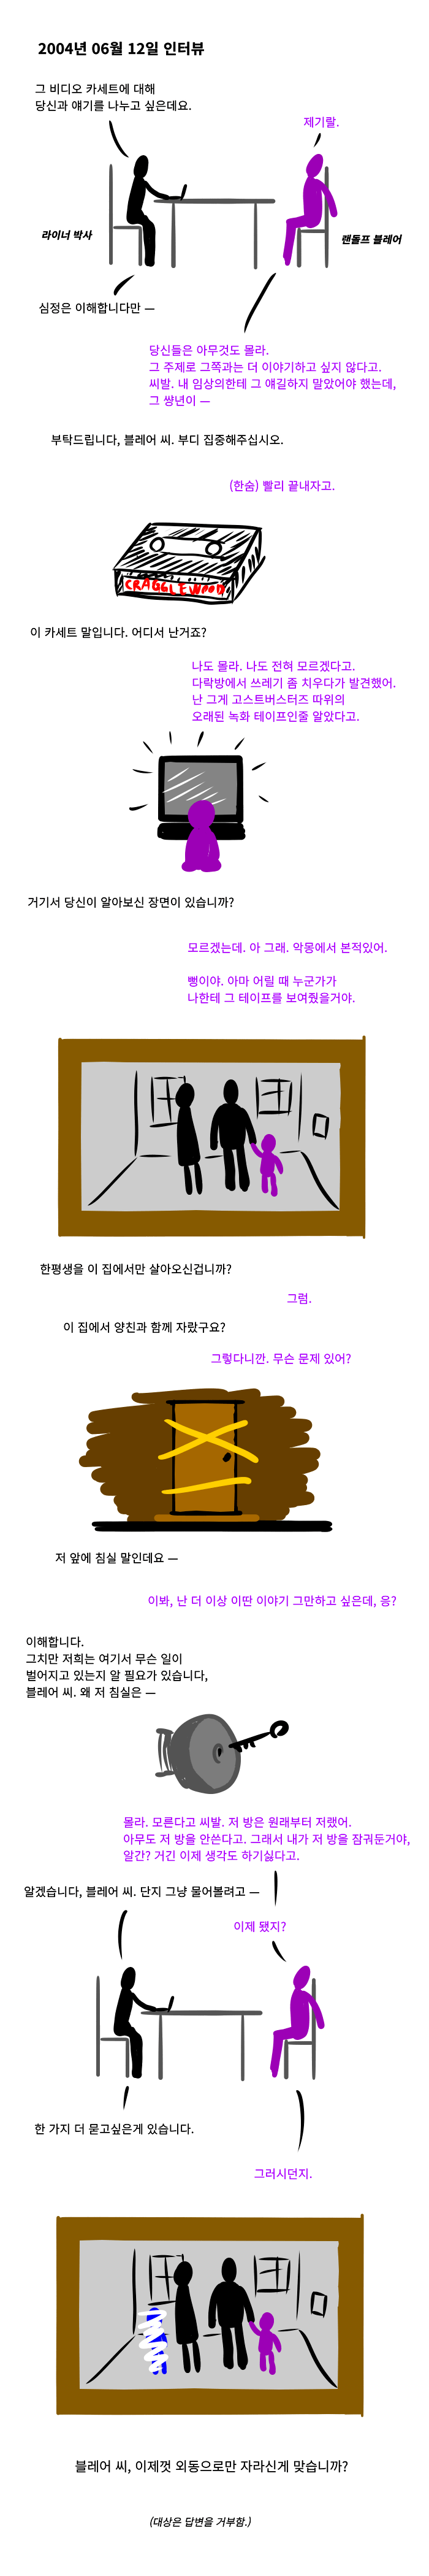 1565995100 (2).png SCP 만화 펌) SCP-2571 \